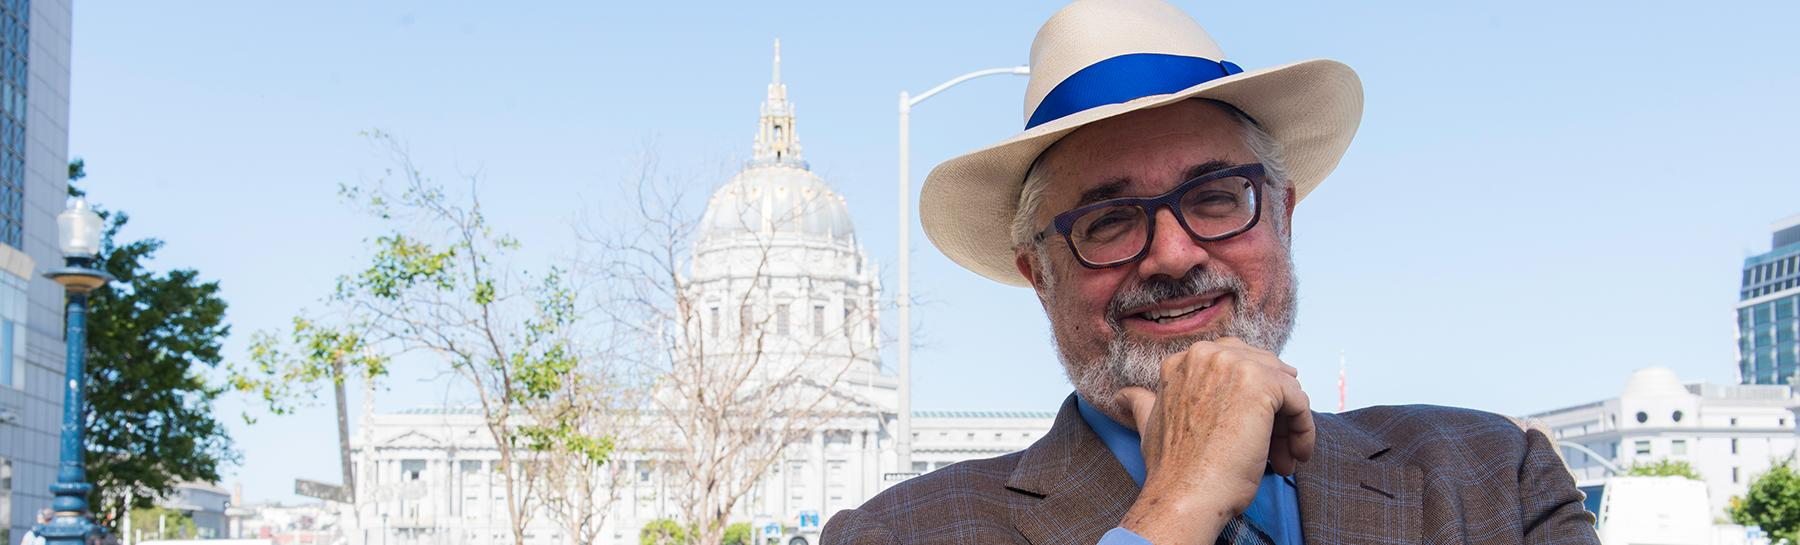 Image of a City and County of San Francisco retiree wearing a hat and standing in the Civic Center with City Hall in the distance.